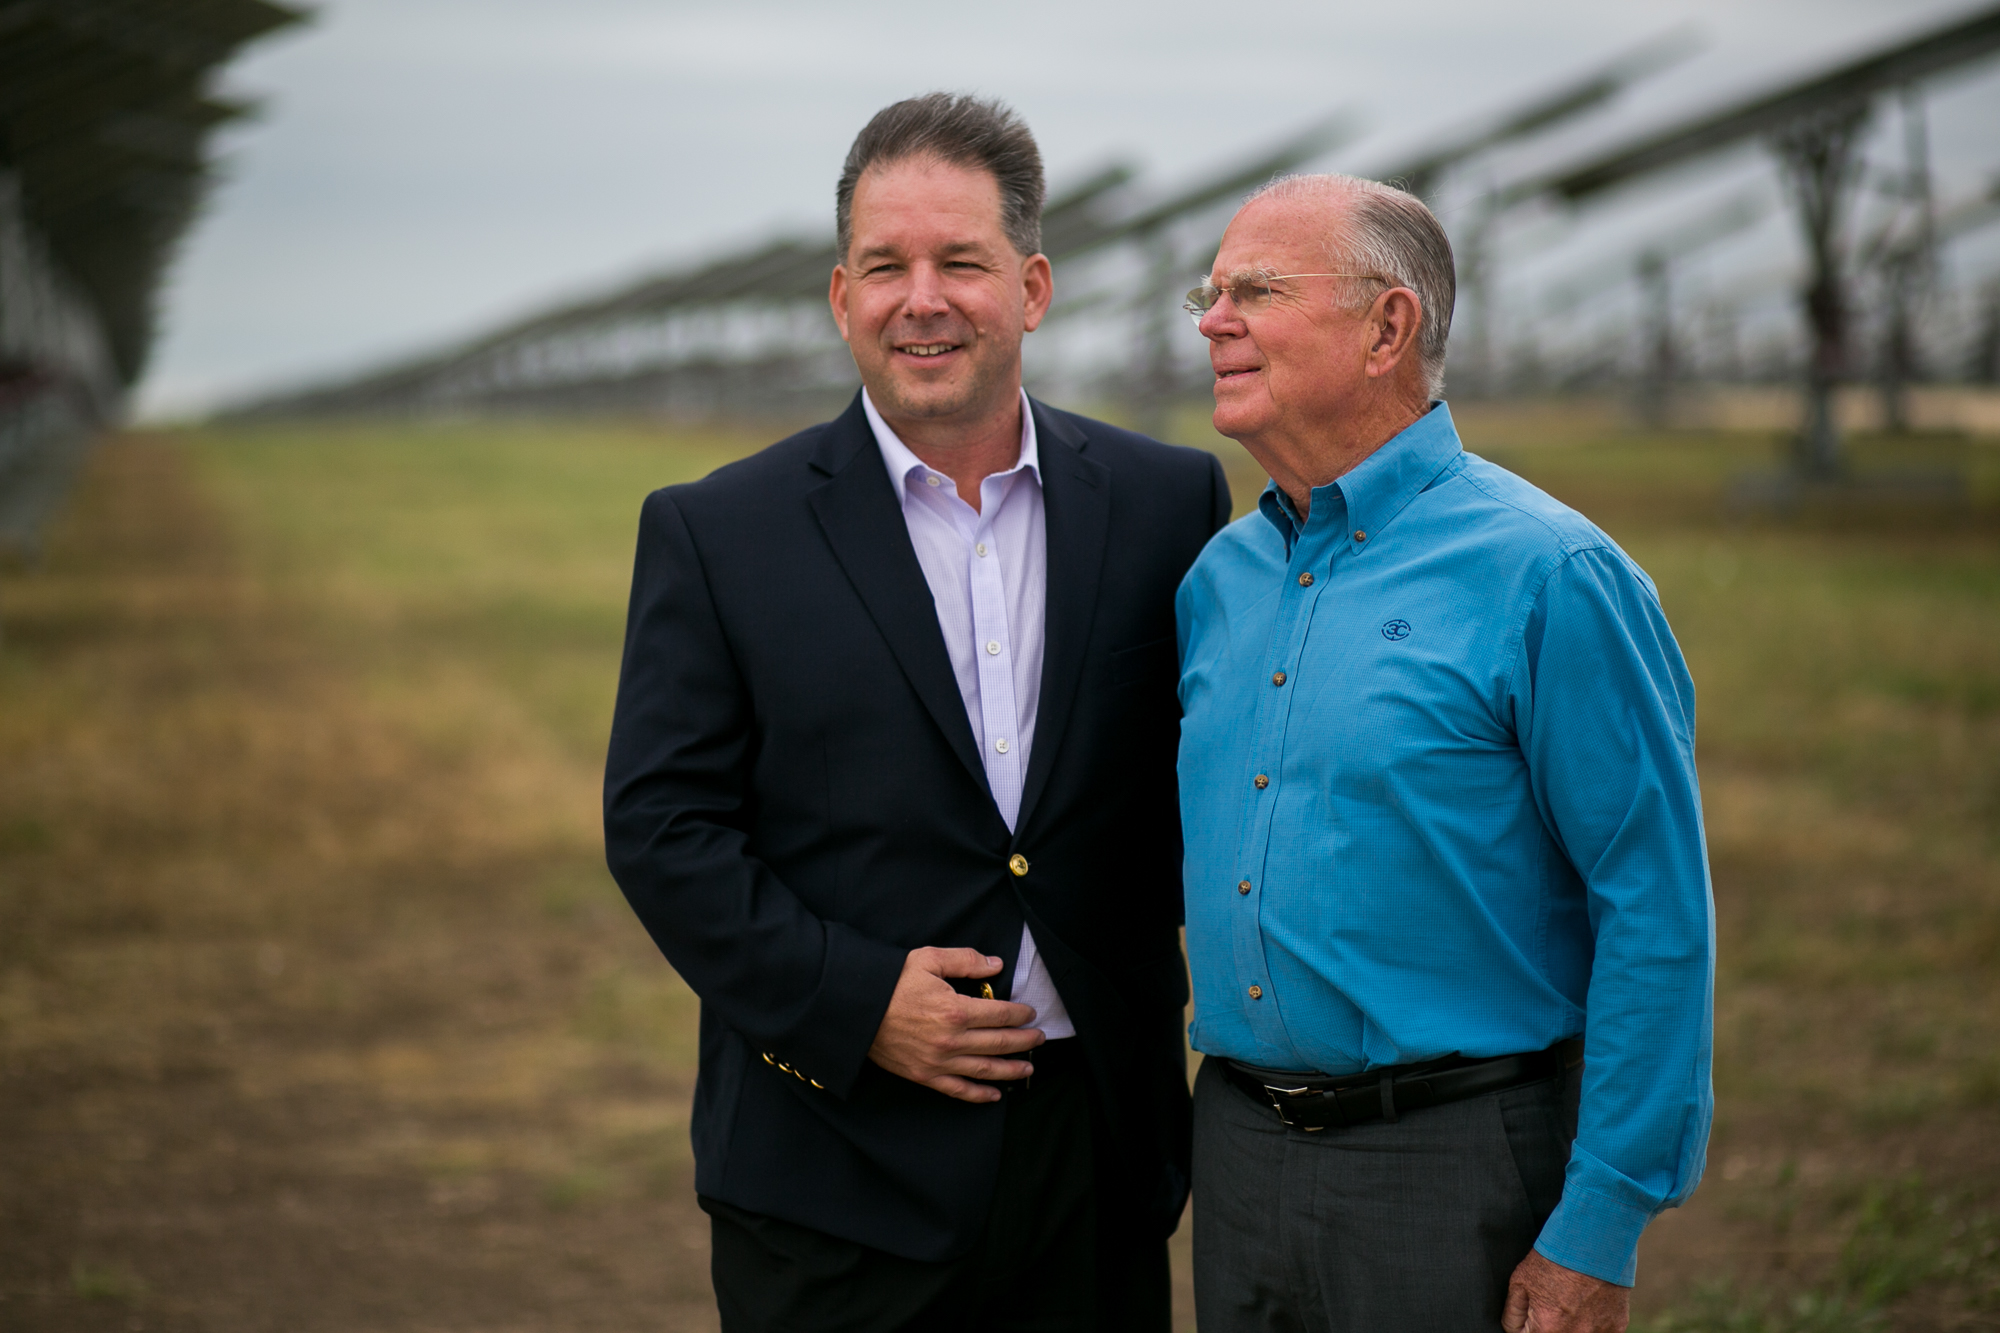 Con Edison Development President and CEO Mark Noyes and former land owner Walter Armstrong stand before the solar power installation. Photo by Kathryn Boyd-Batstone Con Edison Development President and CEO Mark Noyes and Walter Armstrong, who works as an agent for the land owner, stand before the solar power installation. Photo by Kathryn Boyd-Batstone